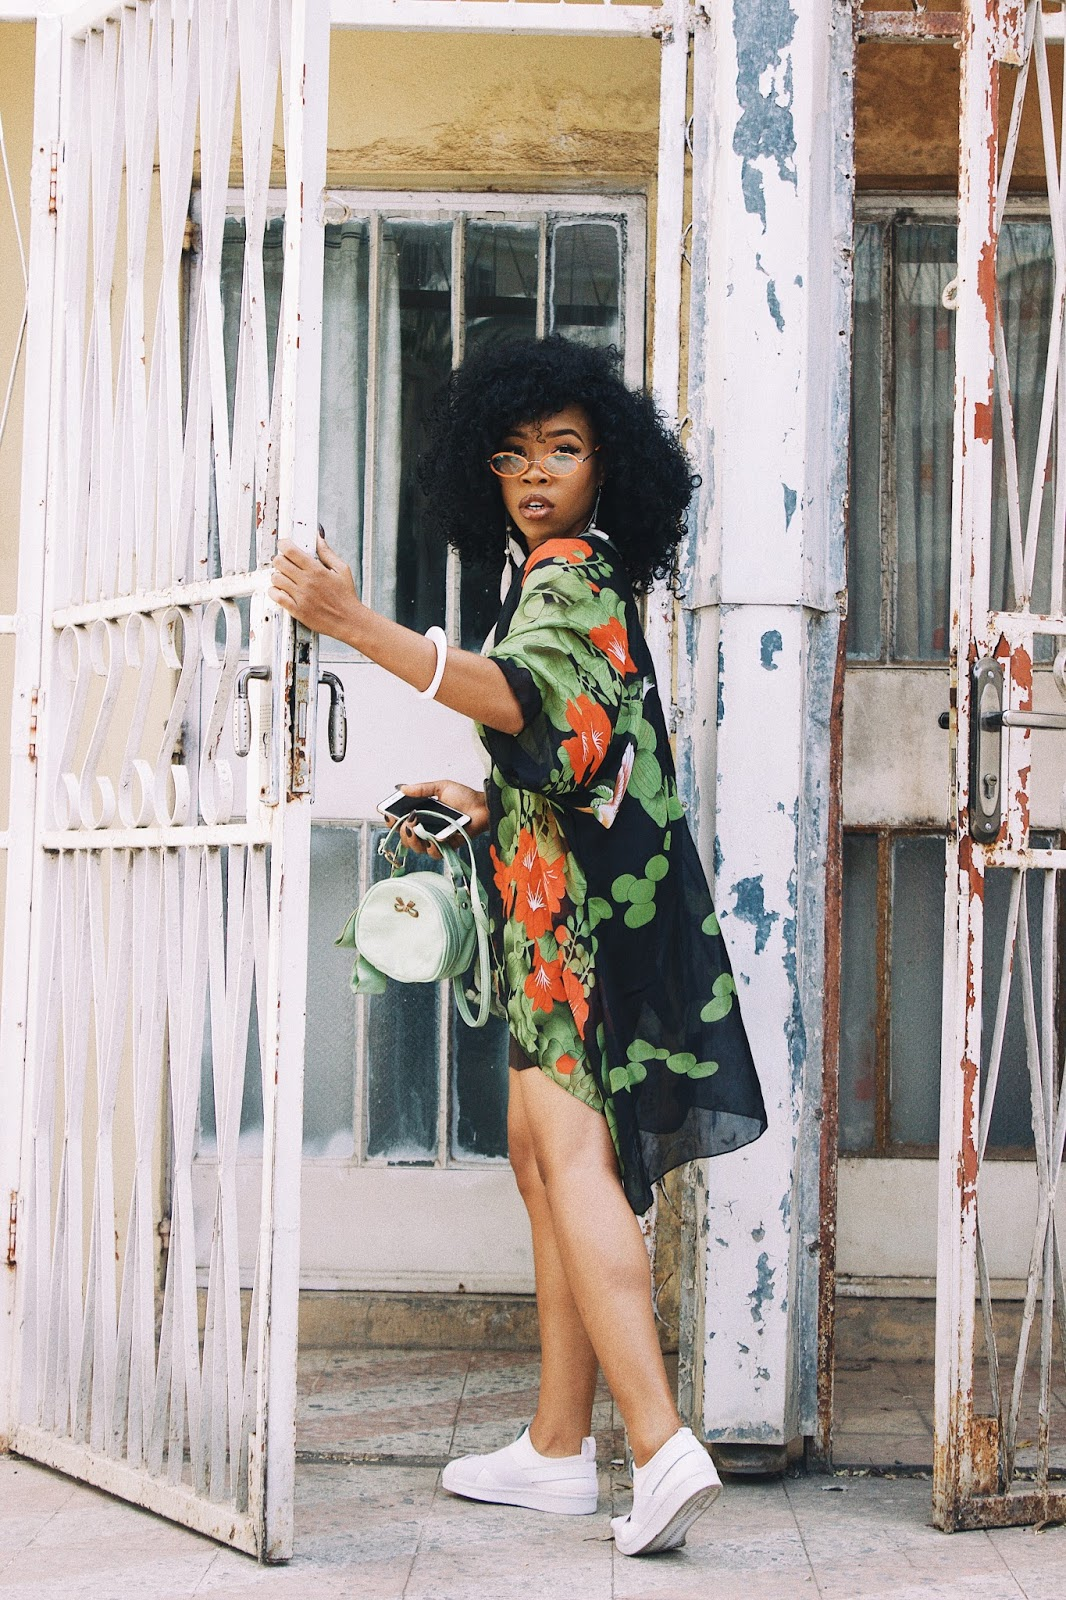 BLACK GIRL IN FLORAL